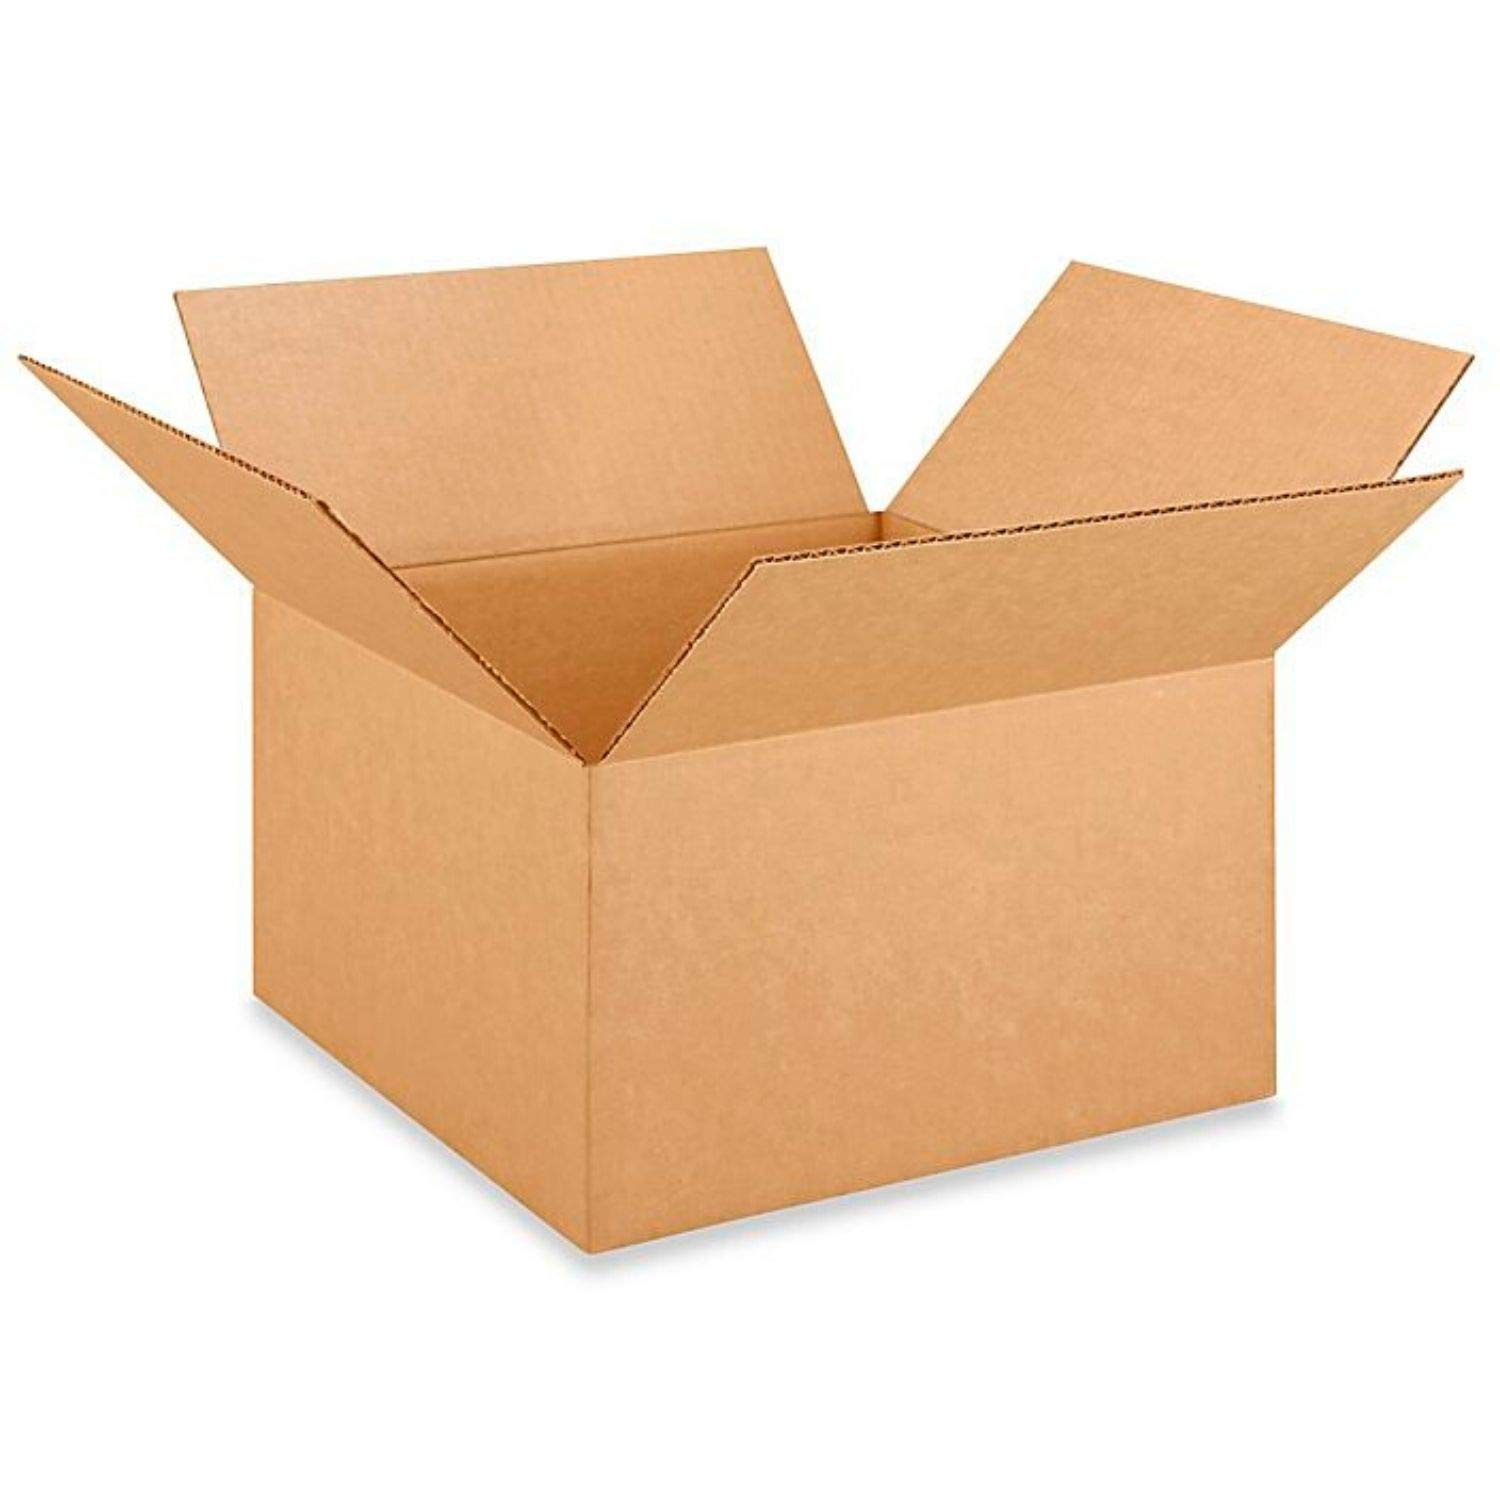 """IDL Packaging Medium Corrugated Shipping Boxes 14""""L x 14""""W x 8""""H (Pack of 25) - Excellent Choice of Sturdy Packing Boxes for USPS, UPS, FedEx Shipping"""